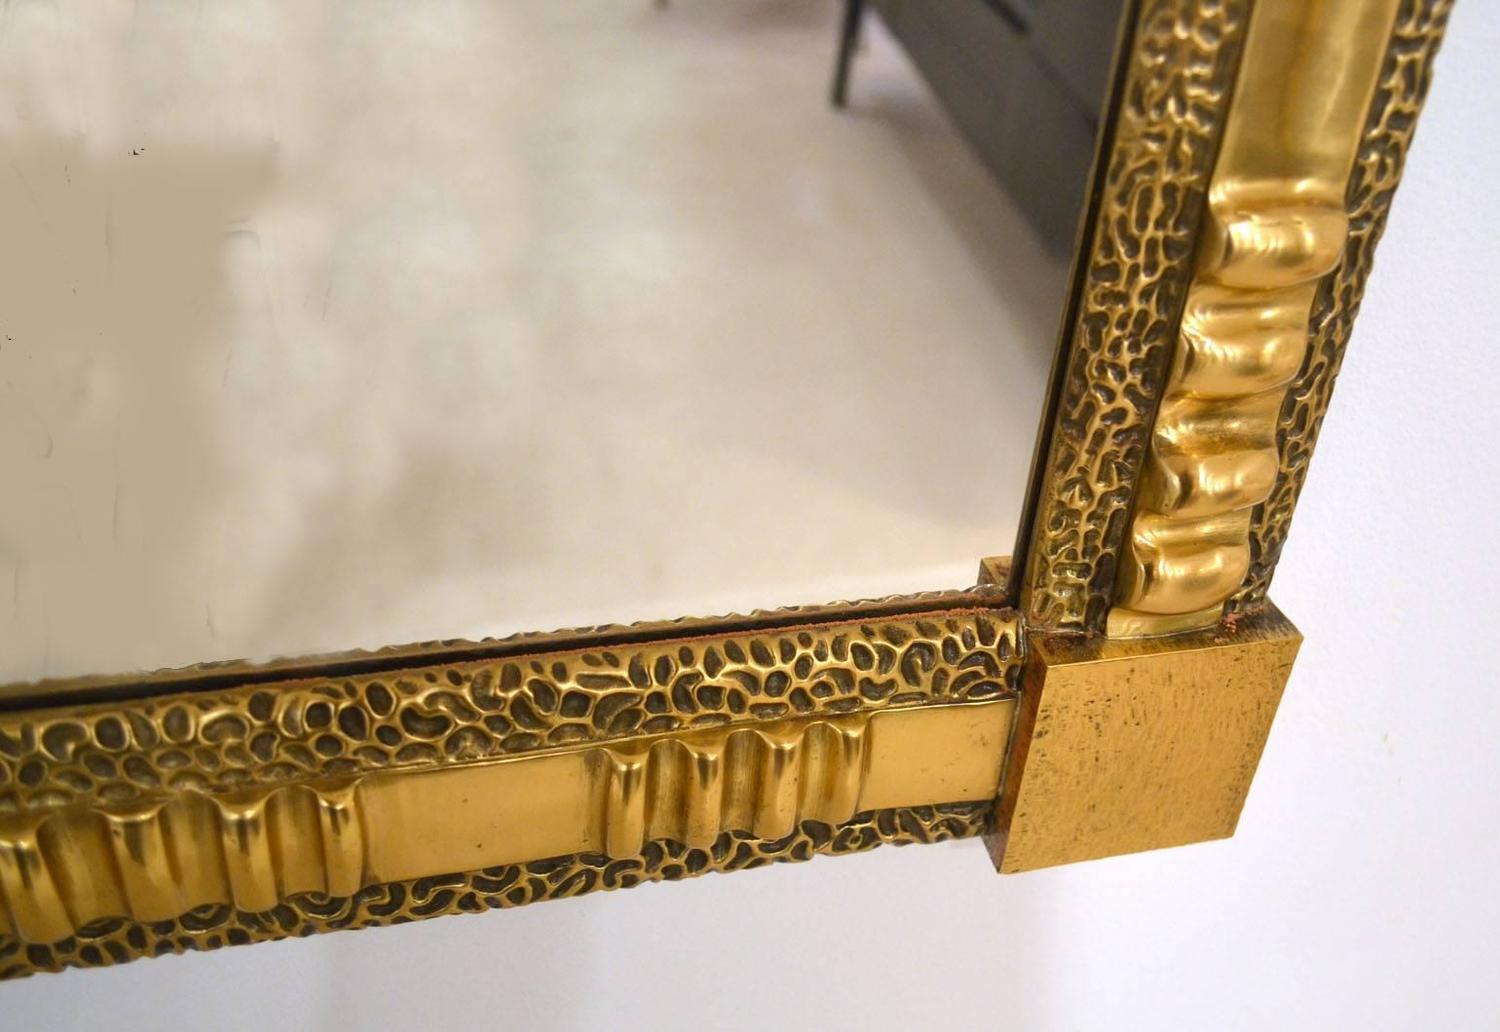 Brass mirror by frigerio 1960 39 s italy for sale at 1stdibs for Mirror 84 x 36